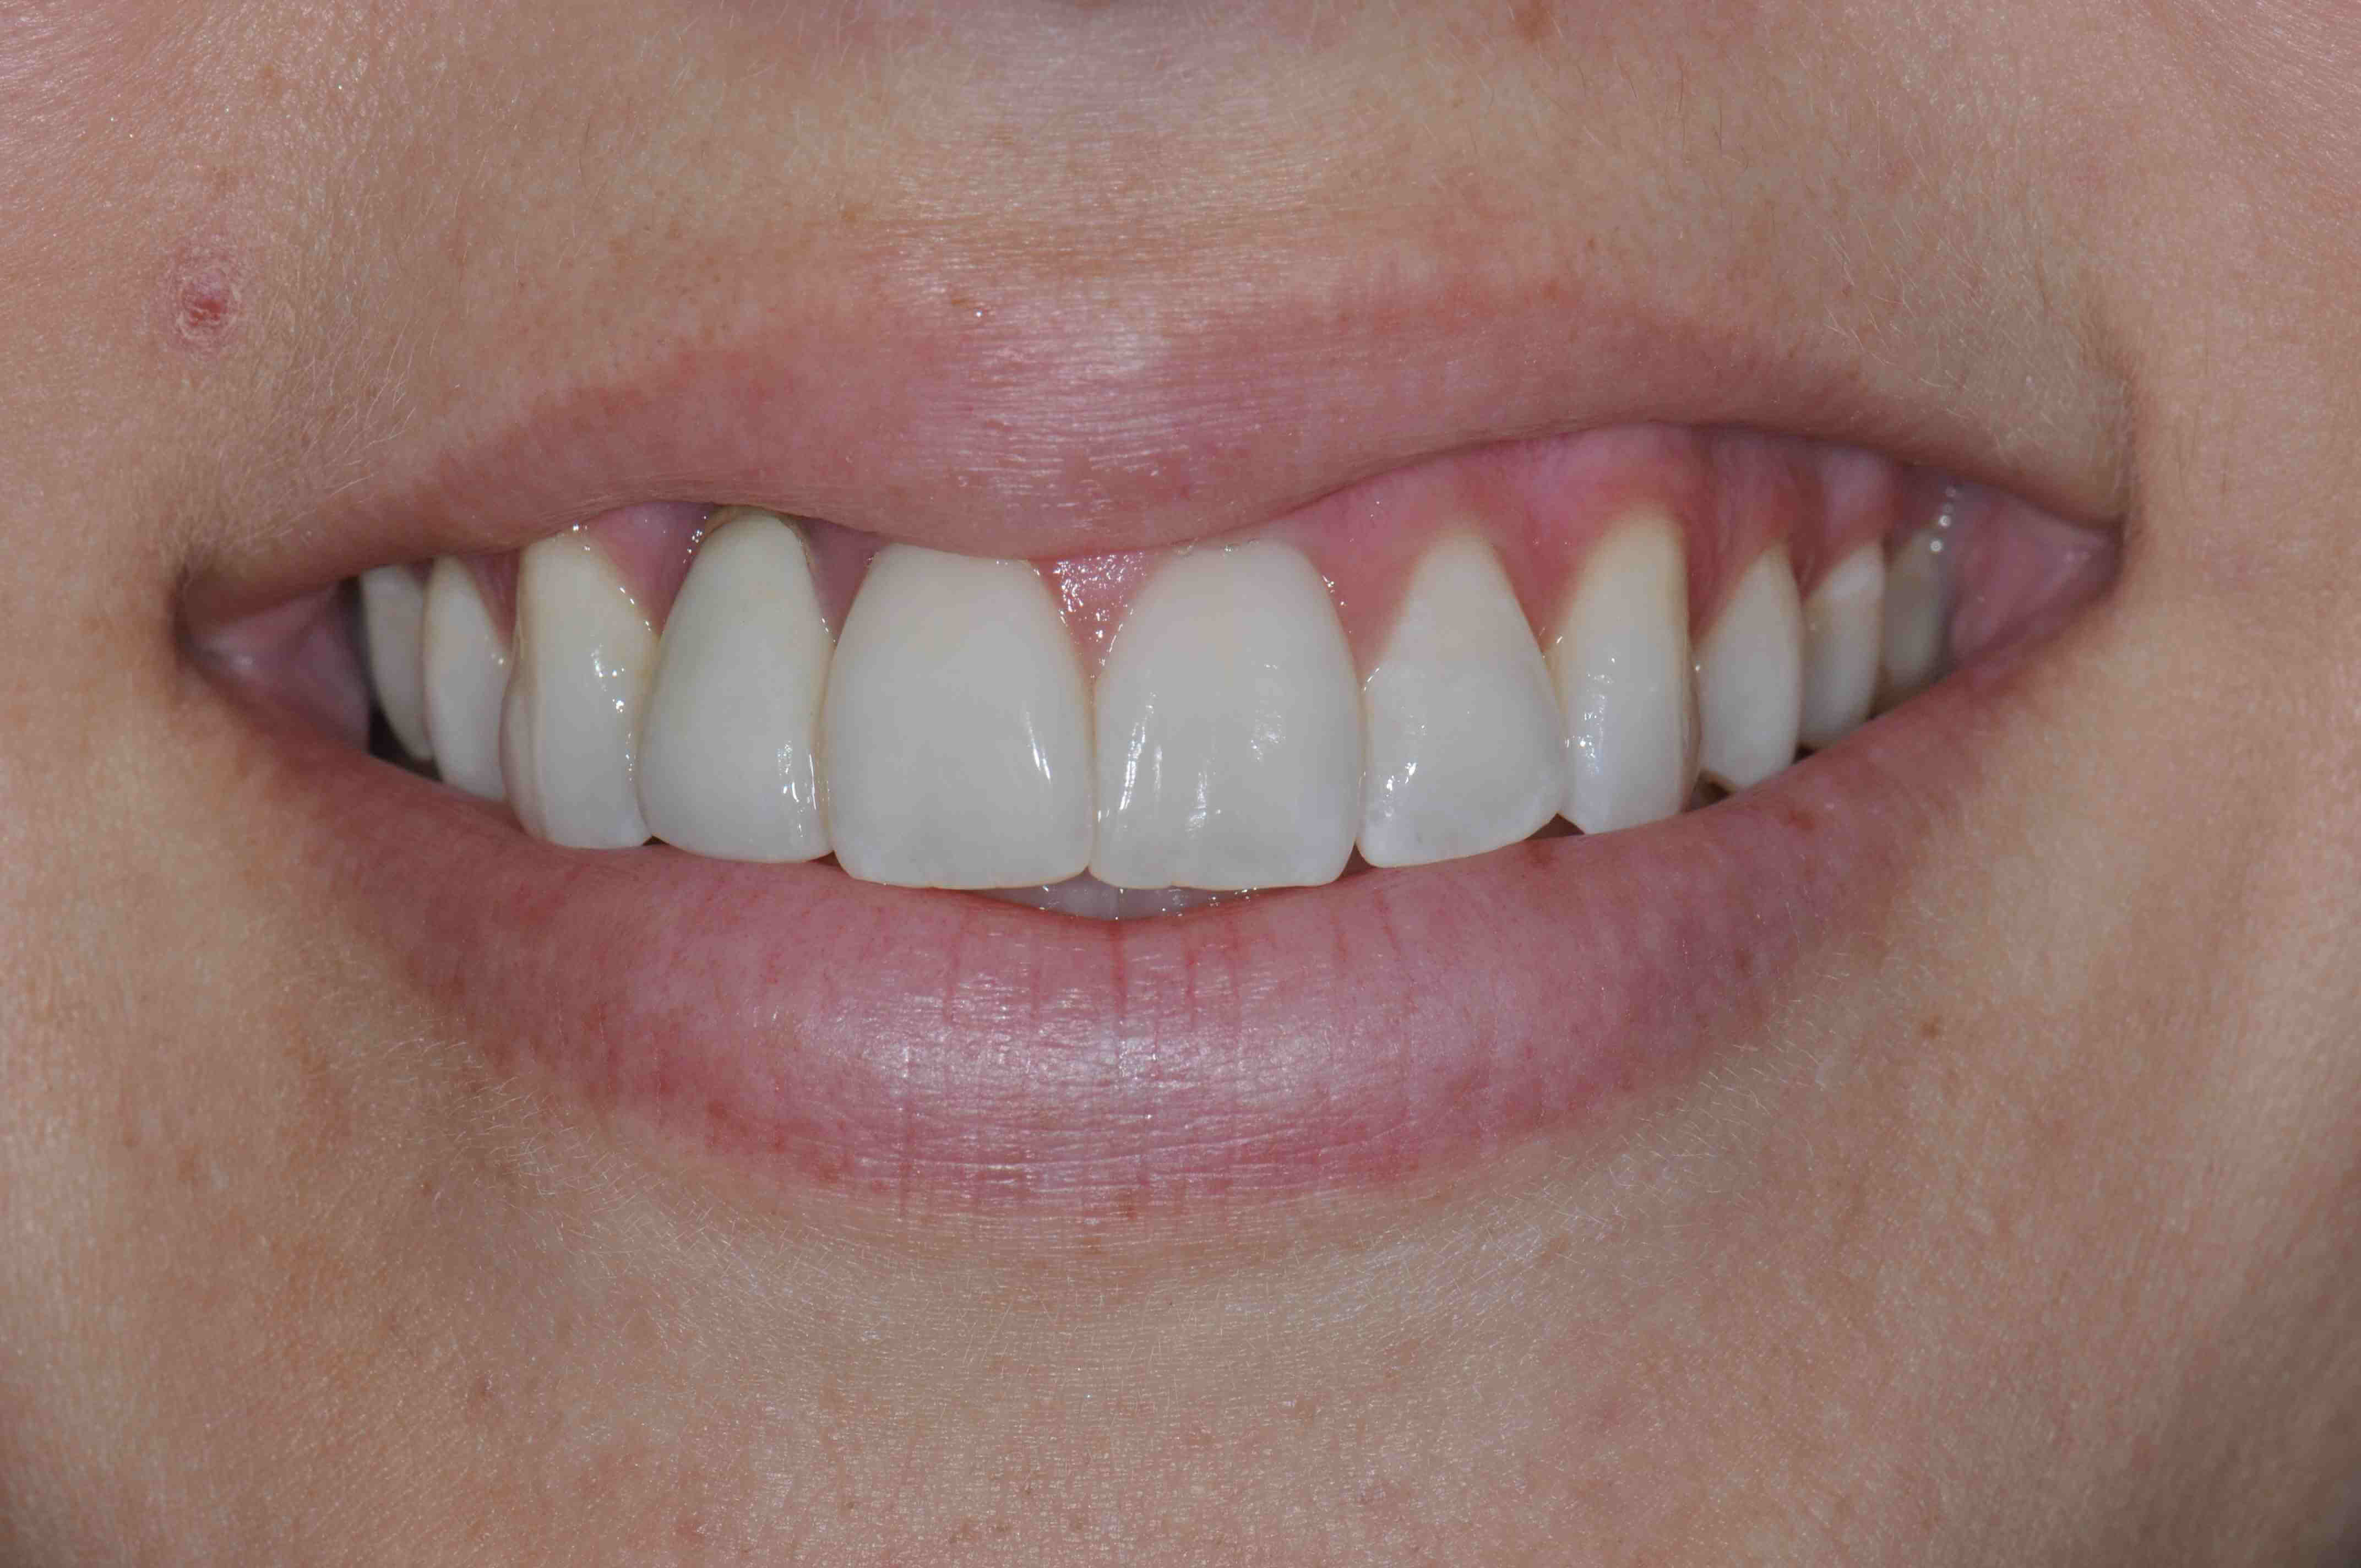 Esthetic Implant Failure: What Would You Do?